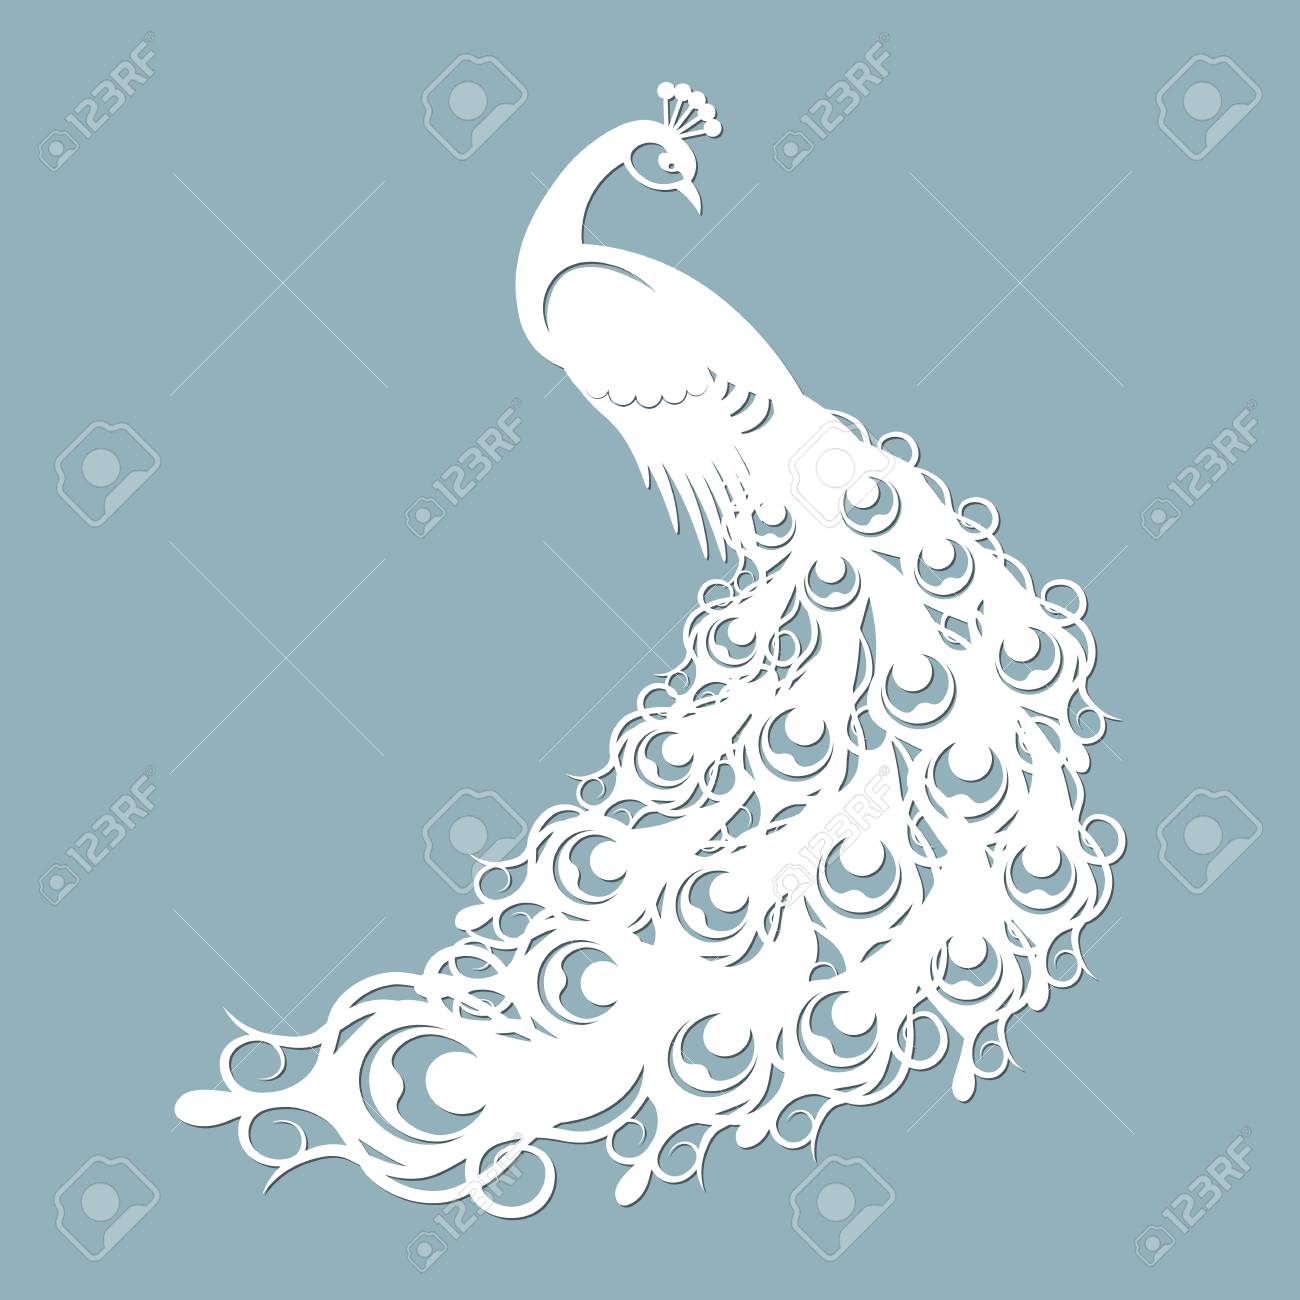 Peacock of paper. The template for the laser cutter and plotter. - 102392879